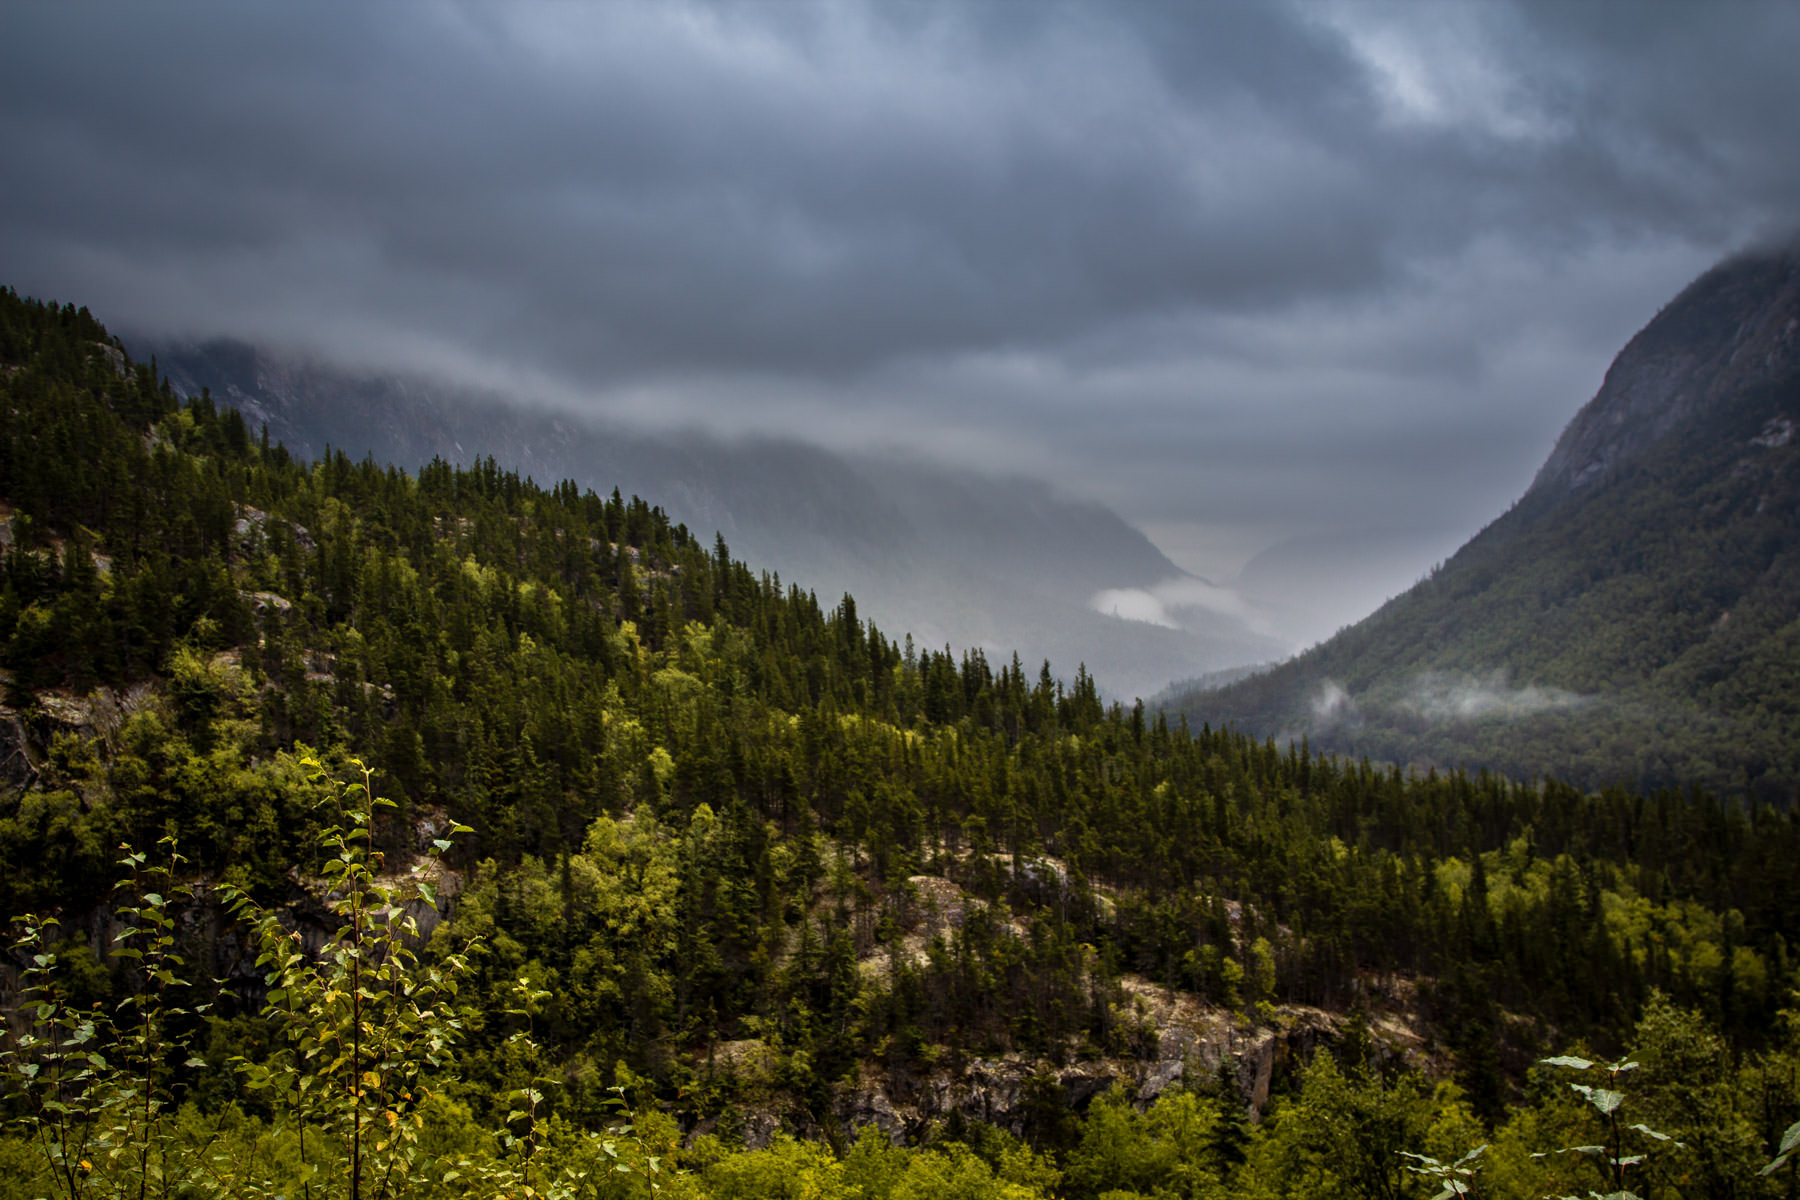 A foggy valley among the mountains just northeast of Skagway, Alaska.